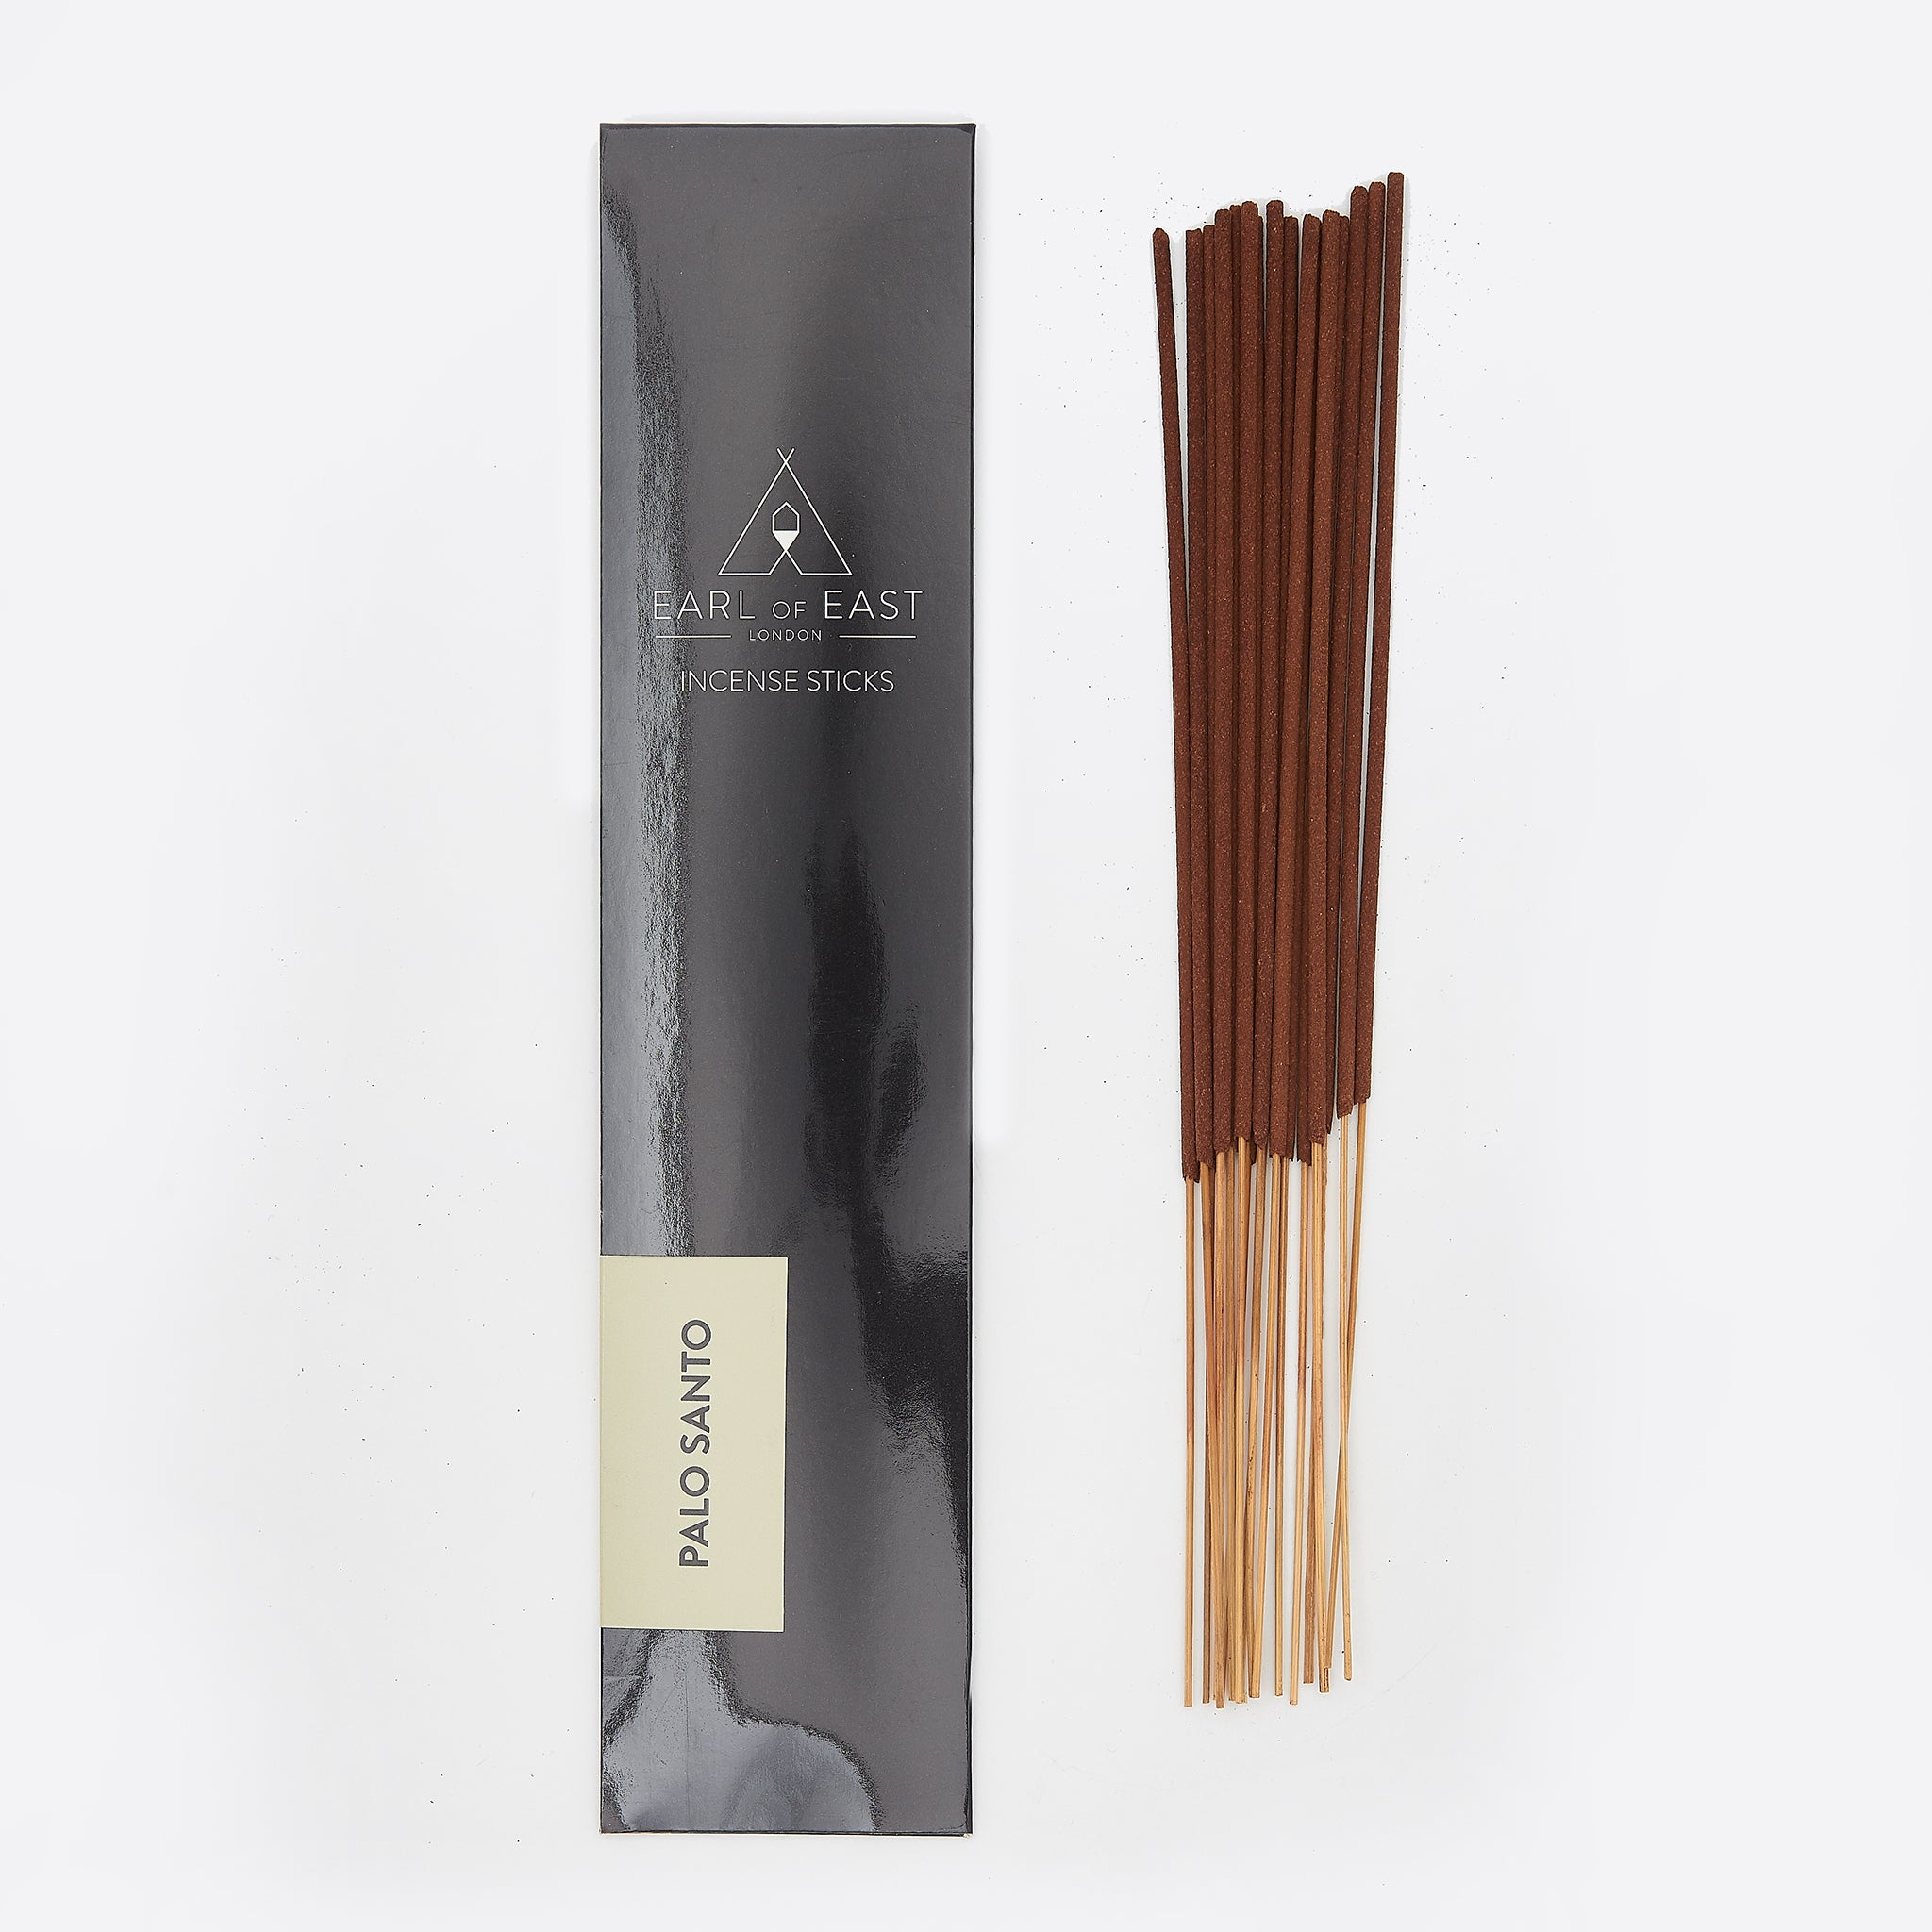 Earl of East Incense Sticks - Palo Santo